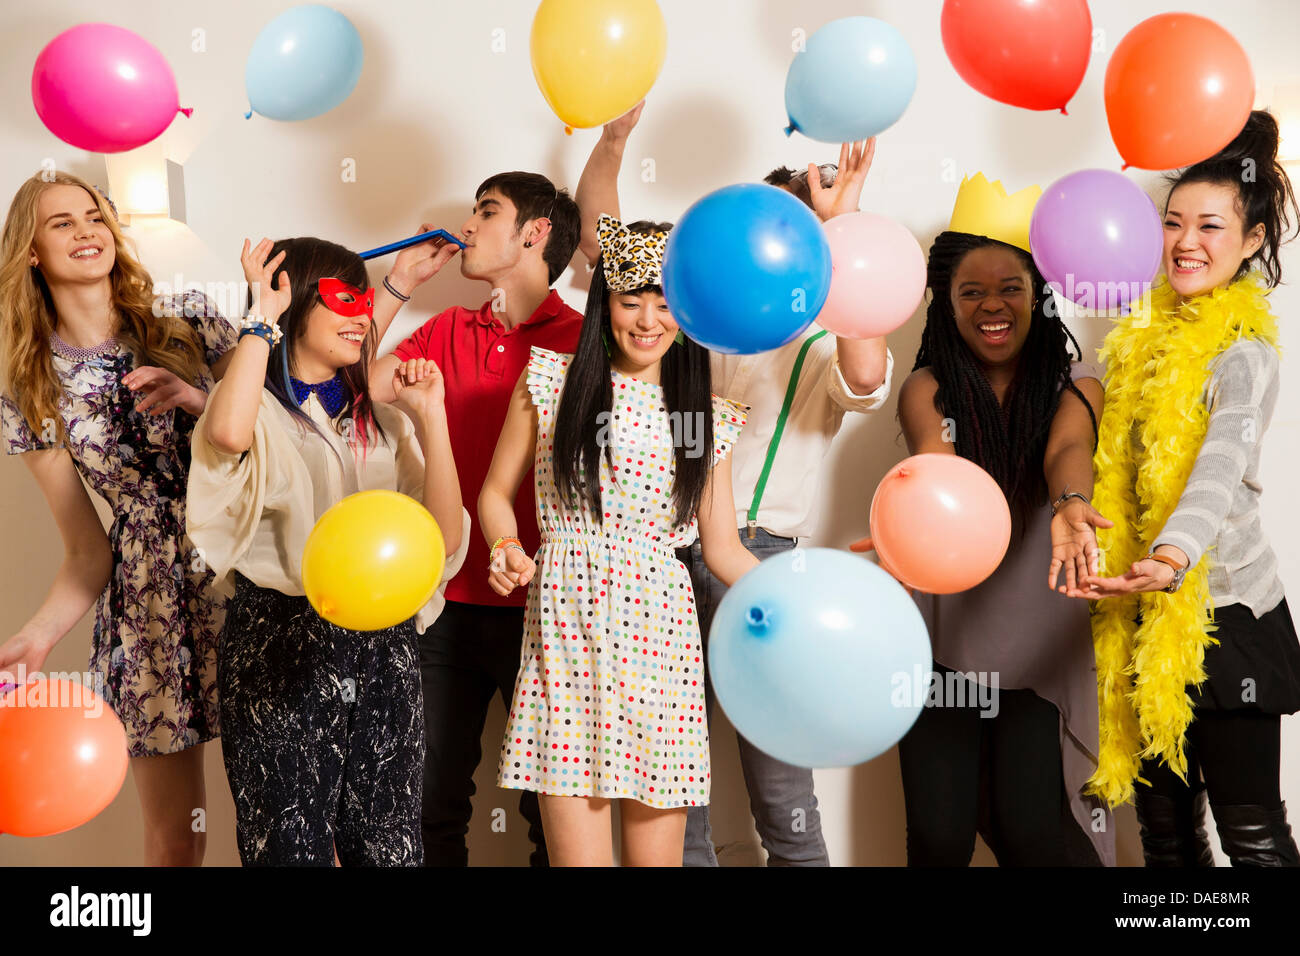 Friends at a party with balloons, studio shot - Stock Image